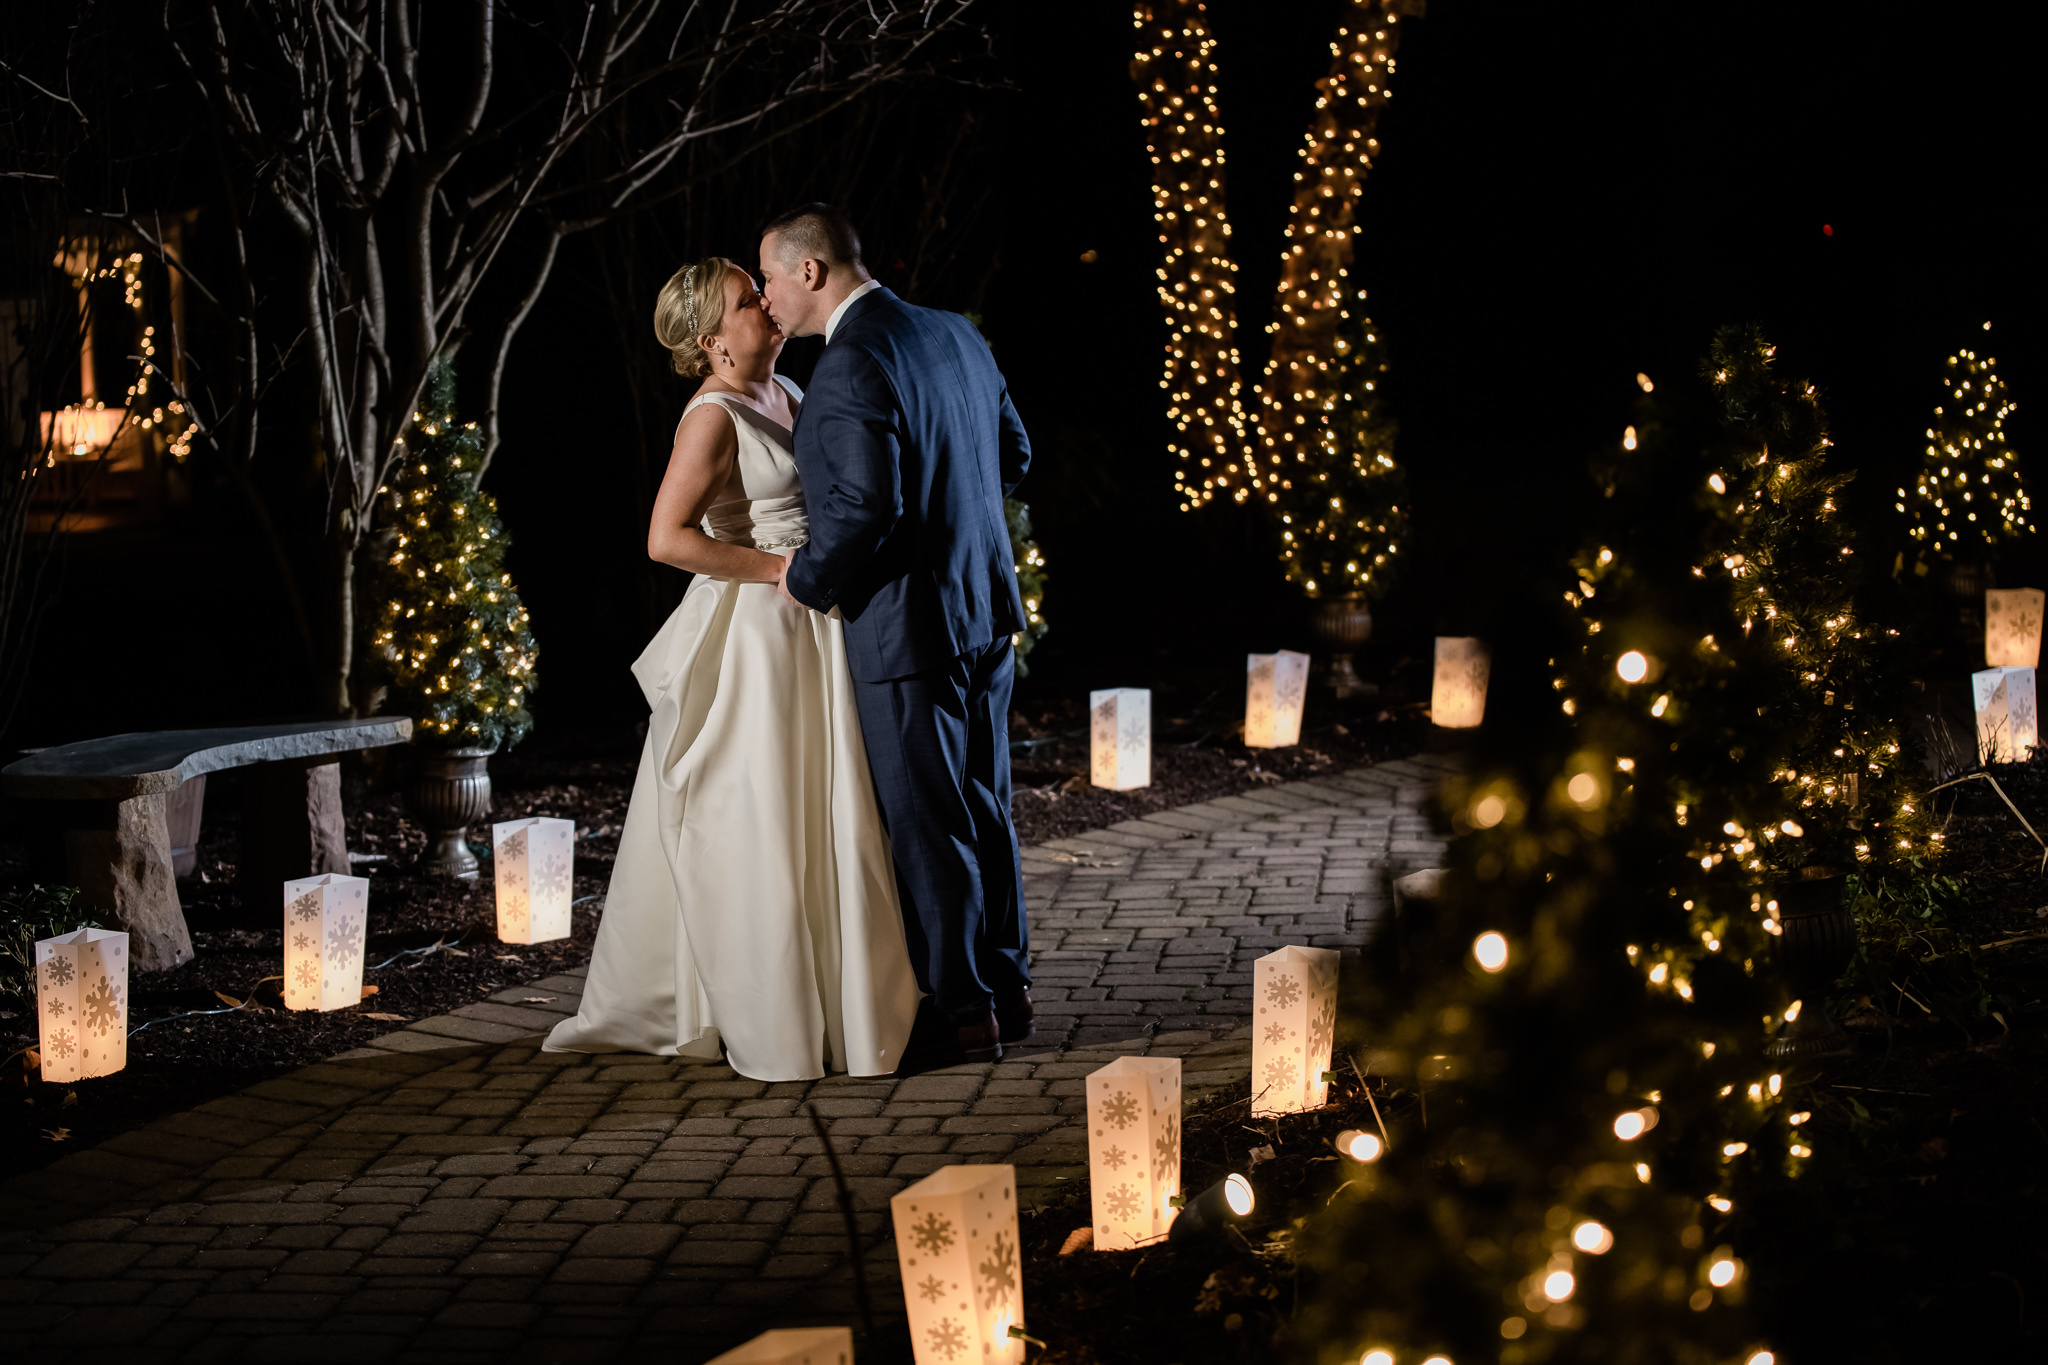 Bride and groom during their winter wedding at the grain house in basking ridge new jersey with blue and orange Christmas themed lights